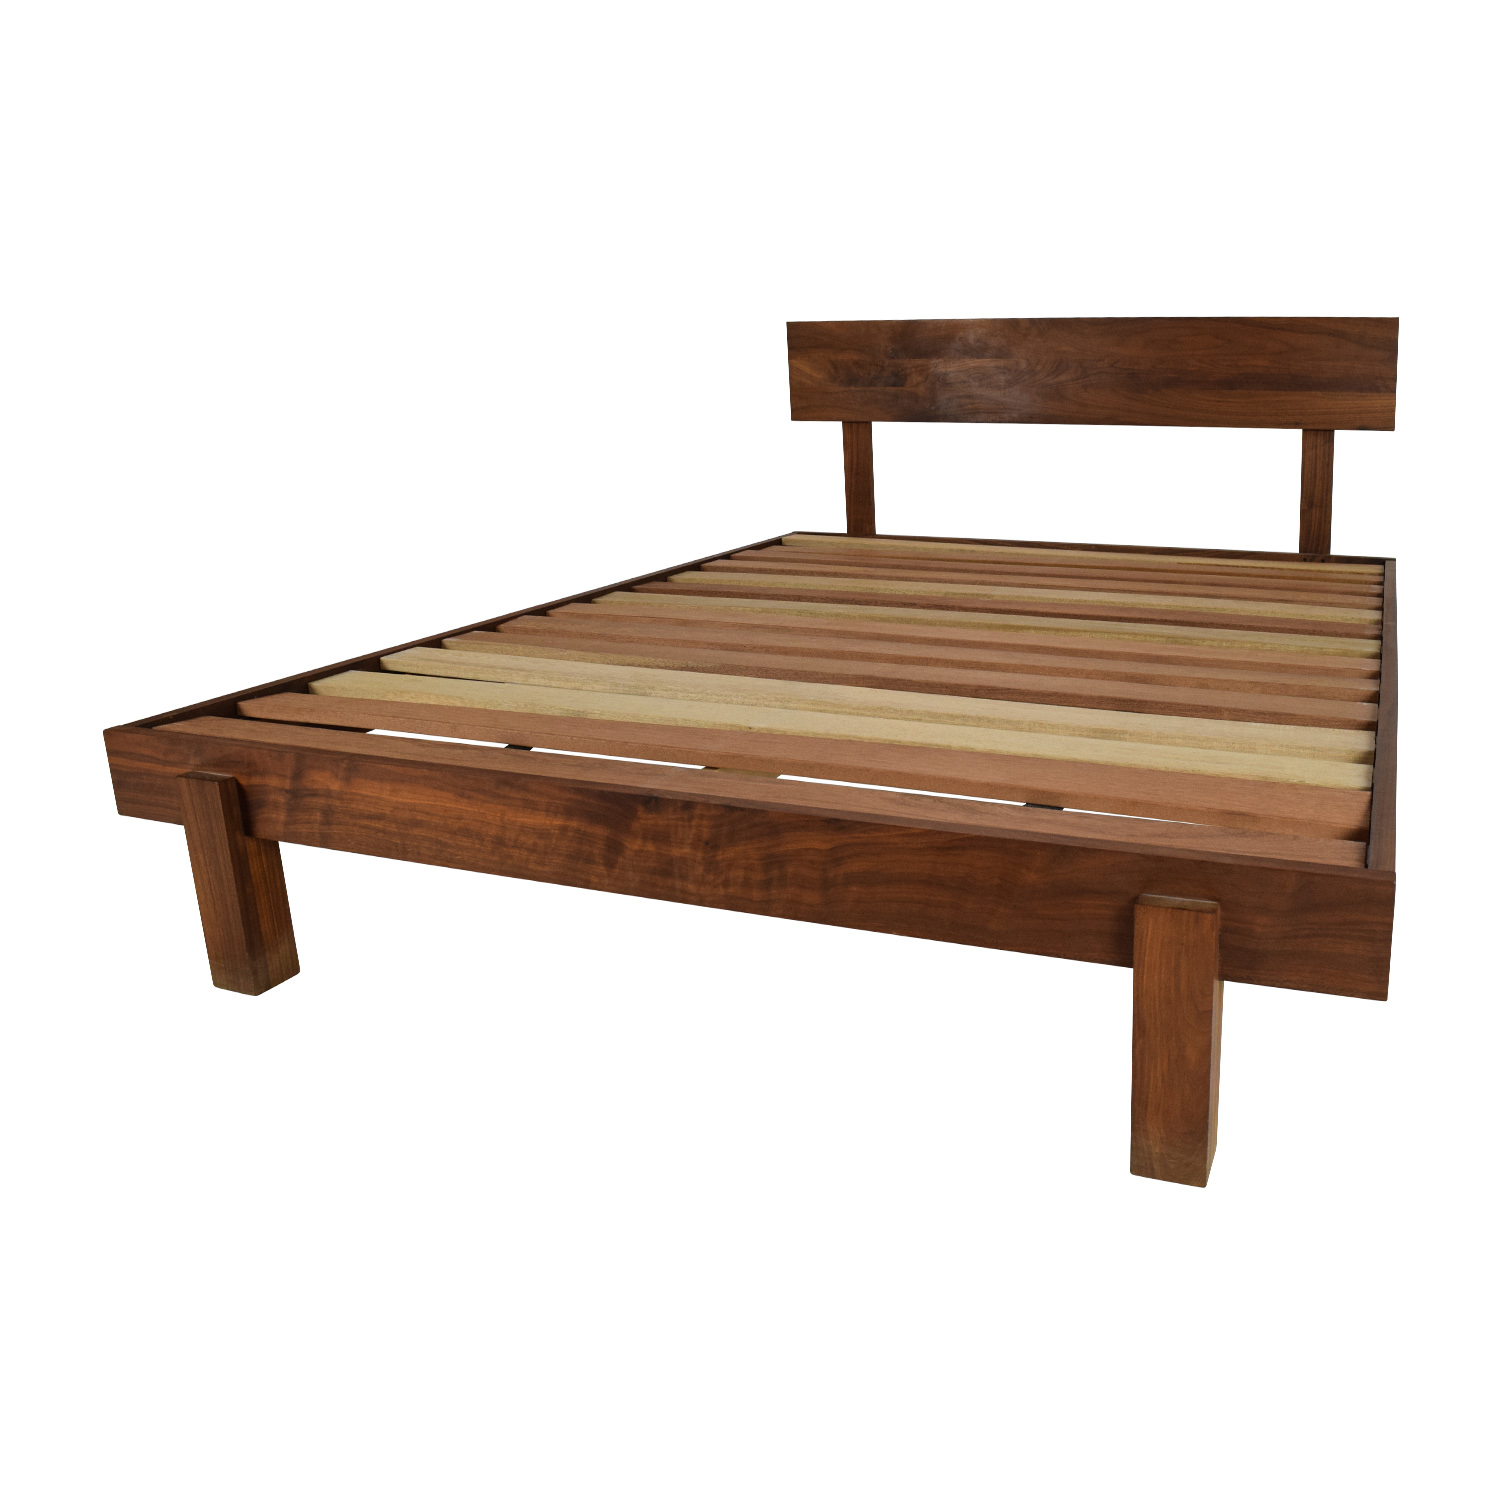 50 off room and board anders queen size bed beds for Queen size bed furniture